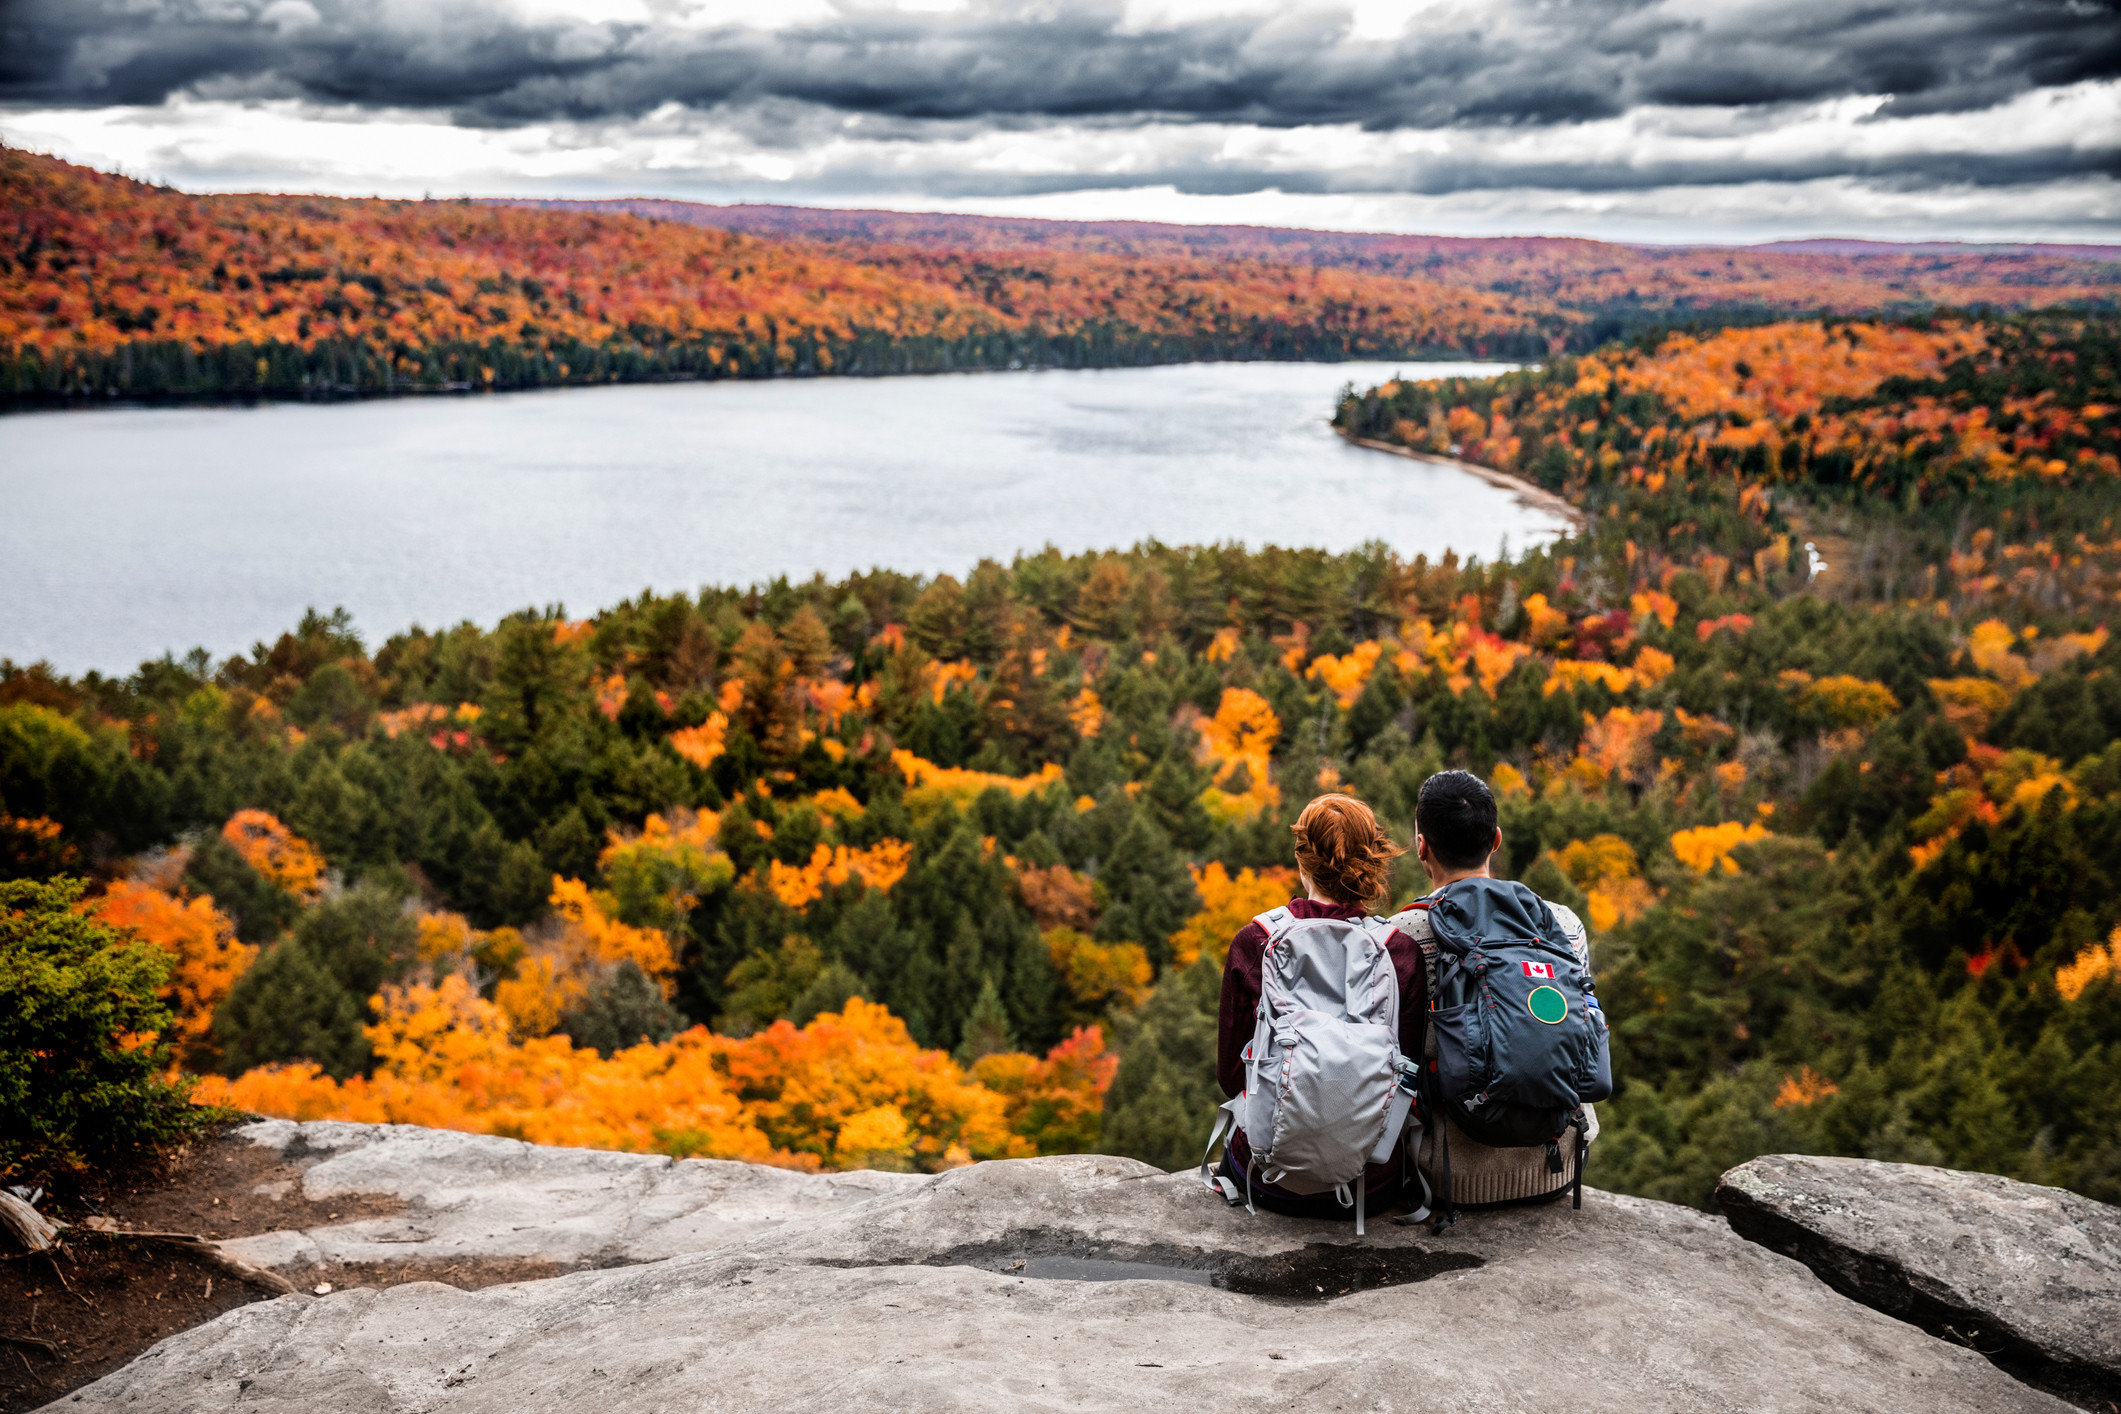 Hotels Packing Tips Travel Tech Travel Tips Trip Ideas tree outdoor Nature wilderness leaf mountain autumn Lake water rock reflection national park sky plant landscape state park fell loch hill recreation tourism ridge tundra River larch